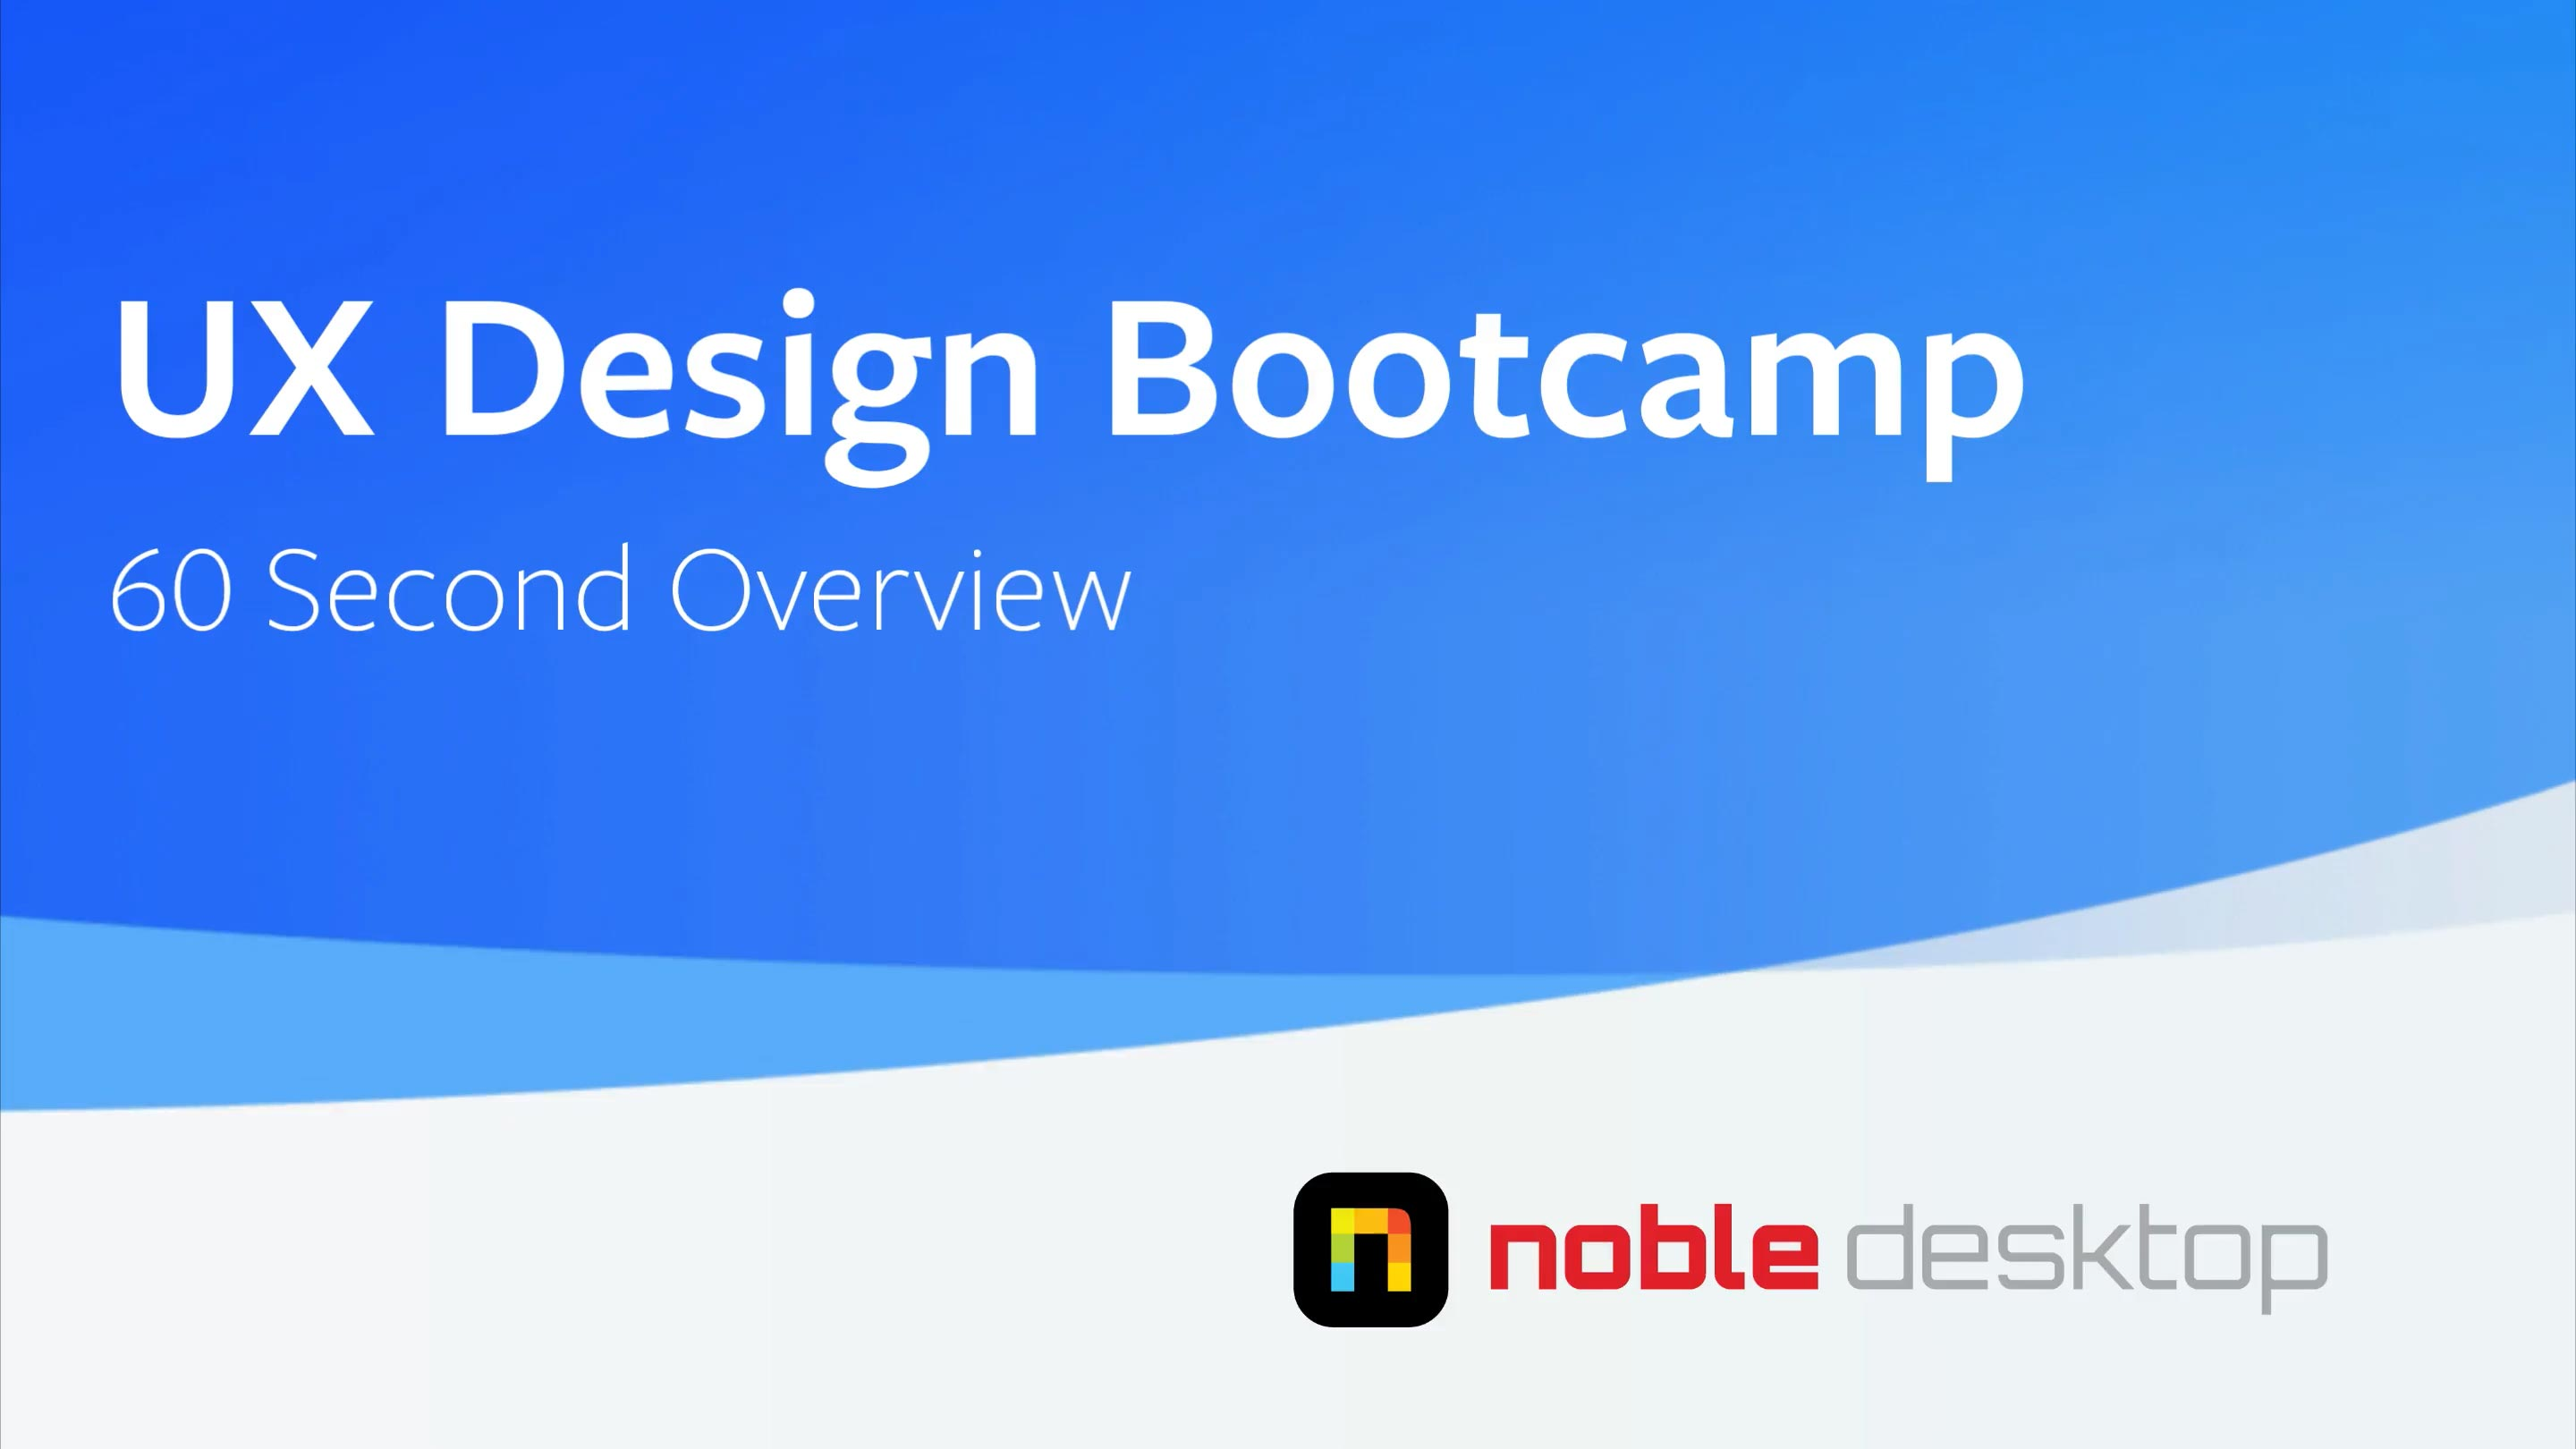 UX Design Bootcamp Class Overview